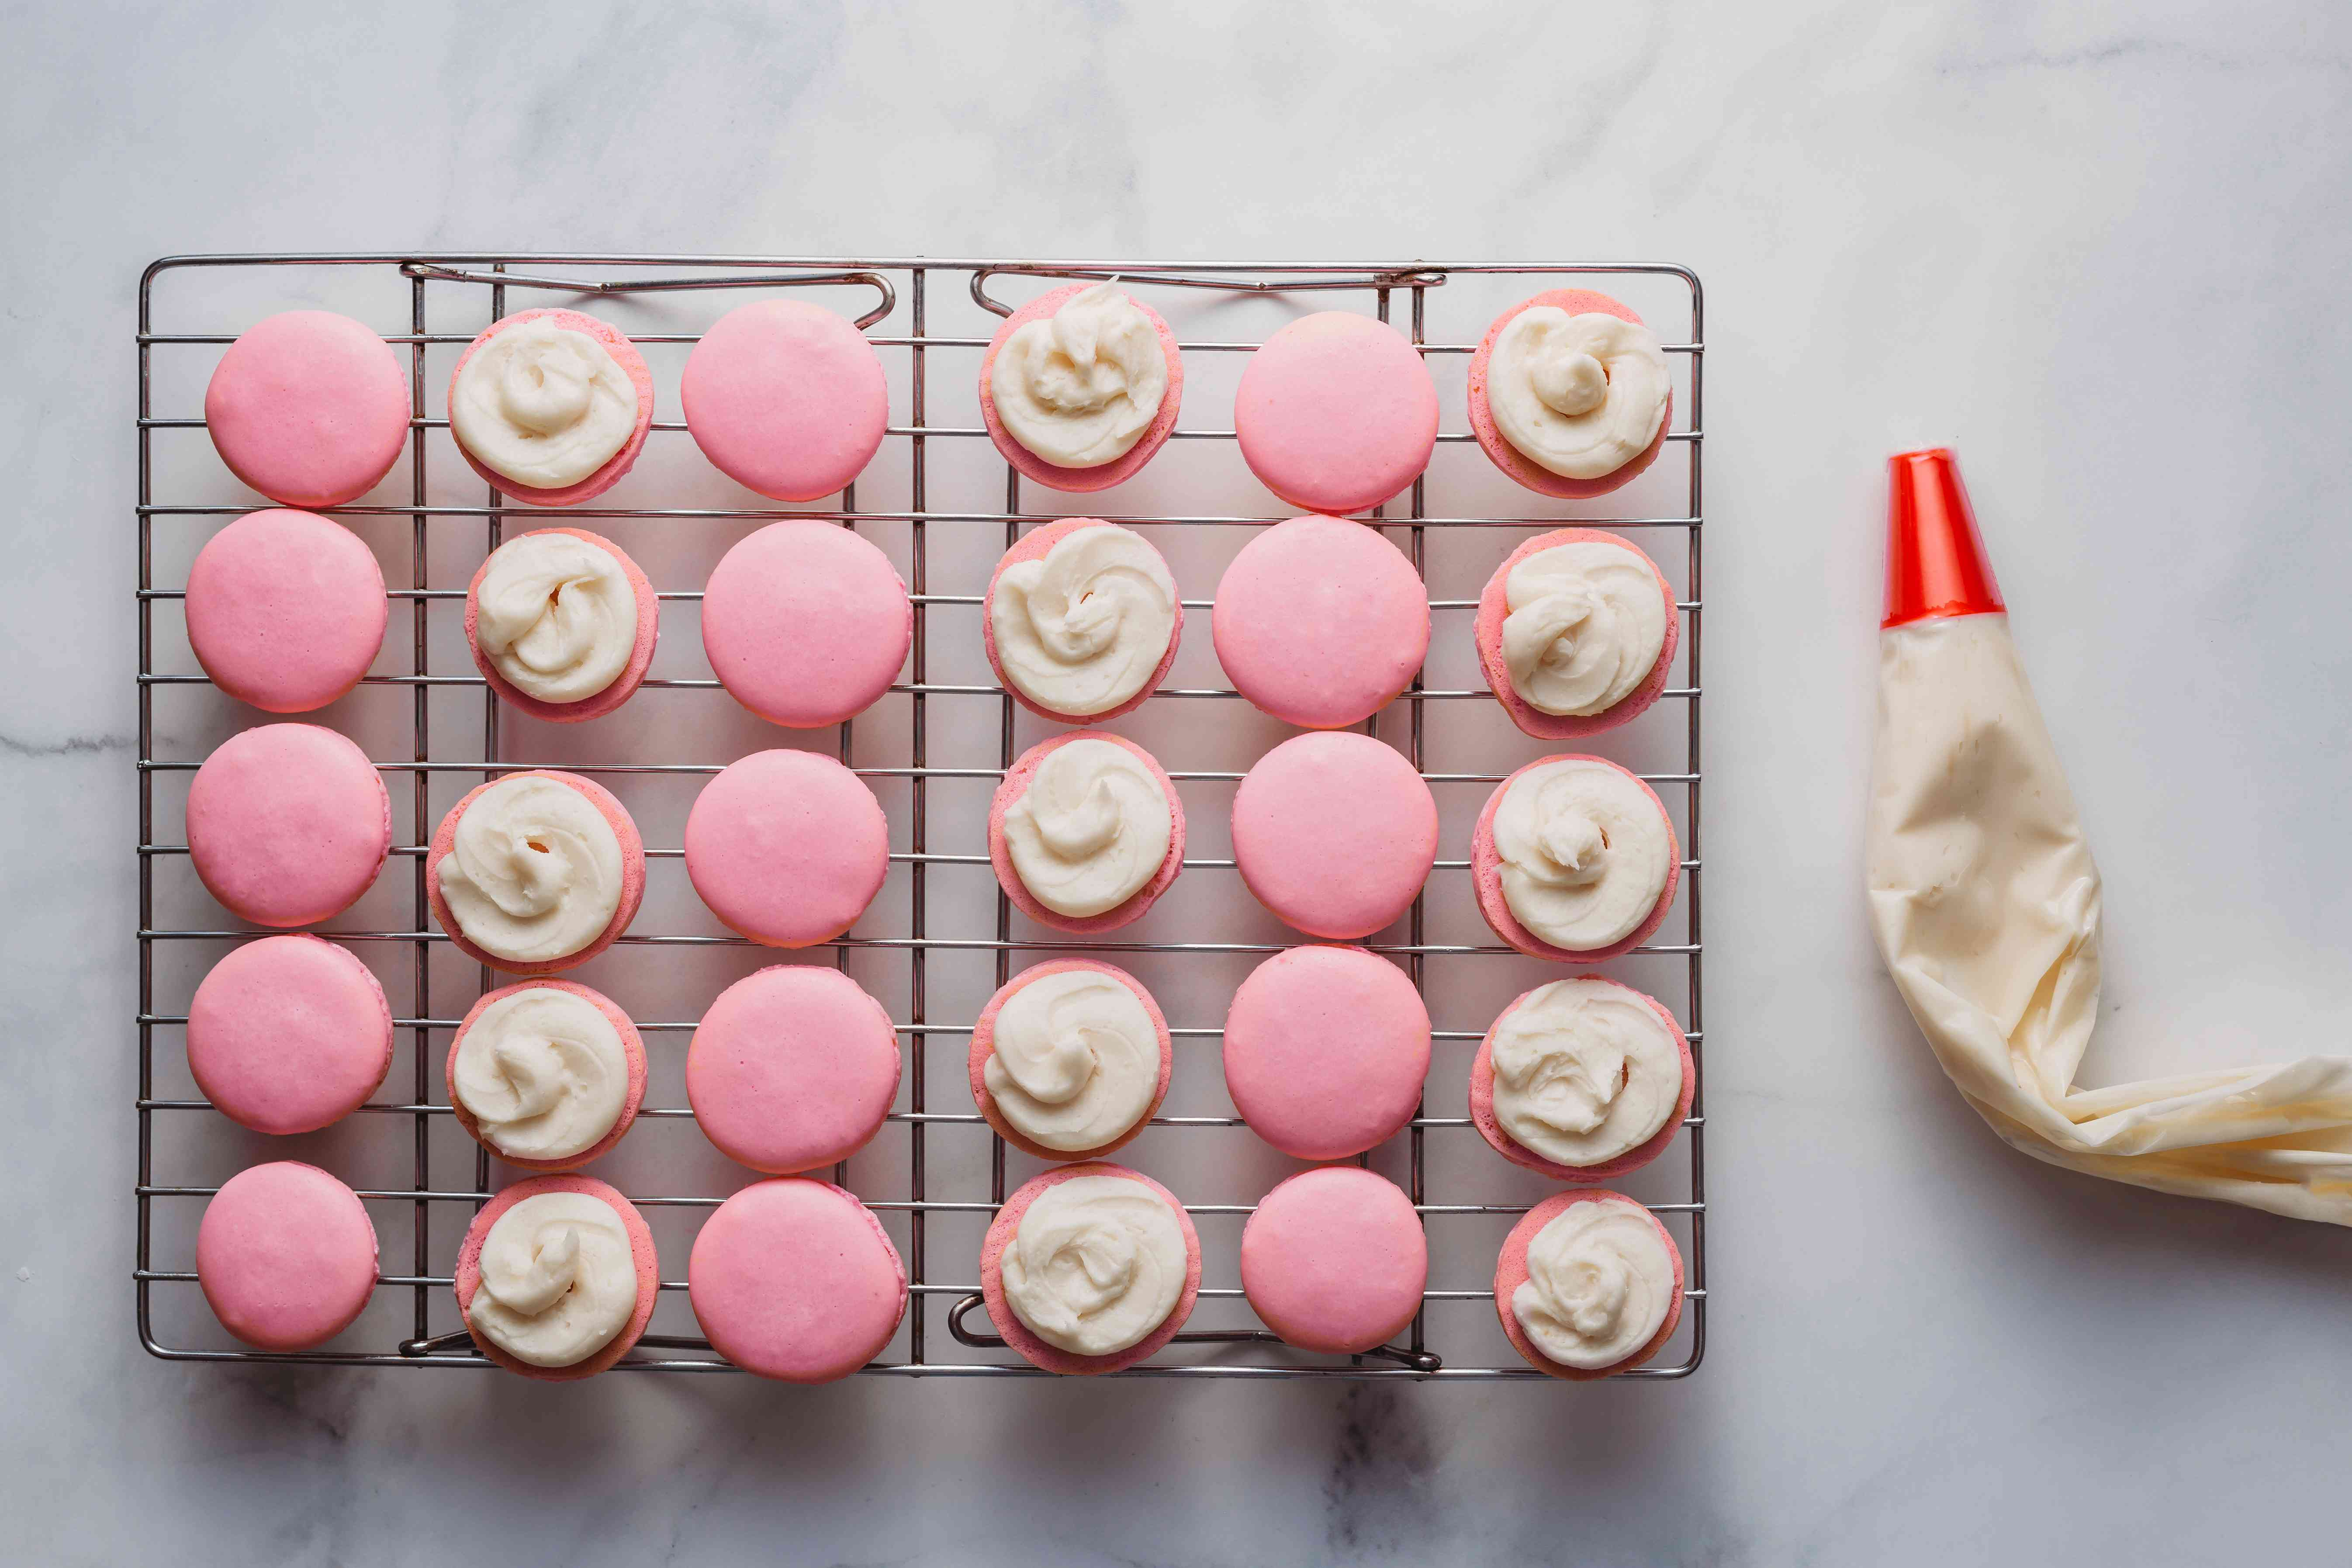 Flip half of the macaron shells upside down and pipe a circle of buttercream onto each shell